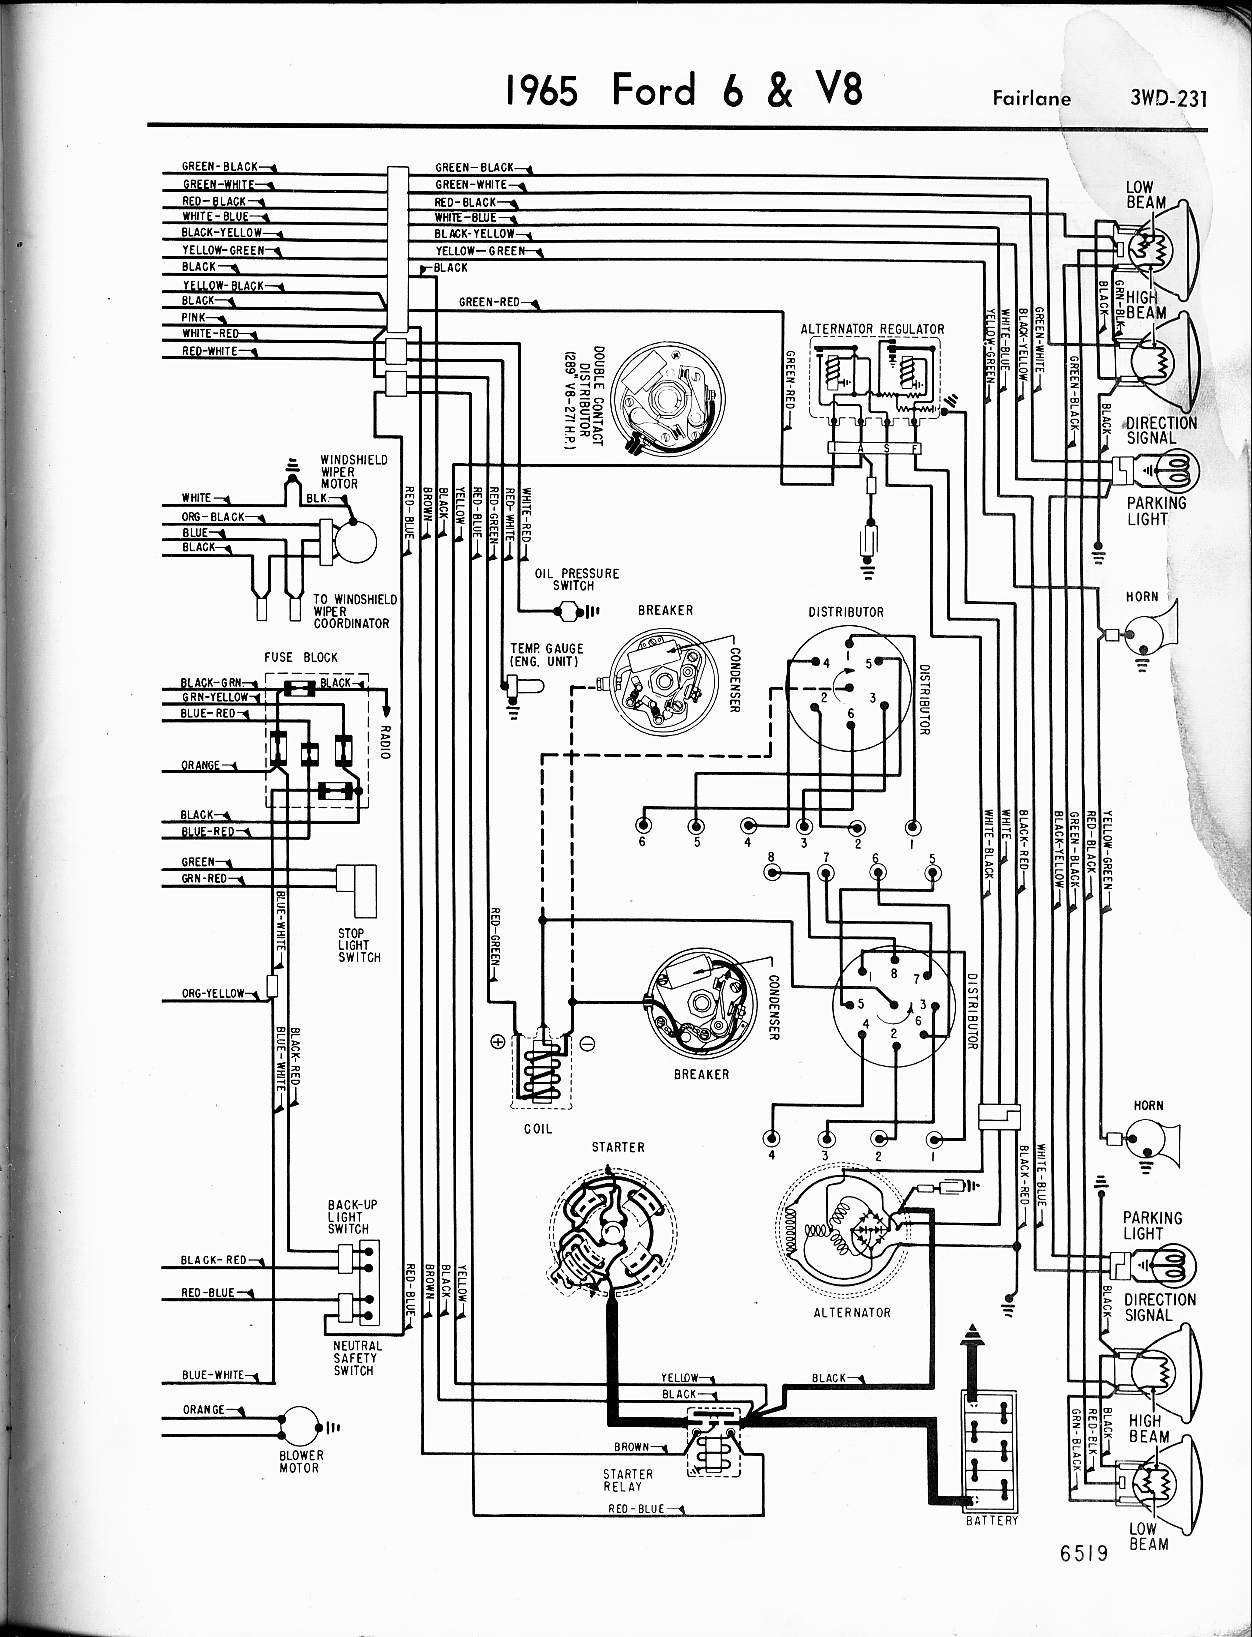 [DIAGRAM_38IS]  NF_2336] Ford F100 Wiring Diagrams 1967 Ford F100 Wiring Diagram 66 Ford  F100 Wiring Diagram | 1966 Ford Wiring Diagram Schematic |  | Ation Mentra Hone Jebrp Xolia Anth Getap Oupli Diog Anth Bemua Sulf Teria  Xaem Ical Licuk Carn Rious Sand Lukep Oxyt Rmine Shopa Mohammedshrine  Librar Wiring 101